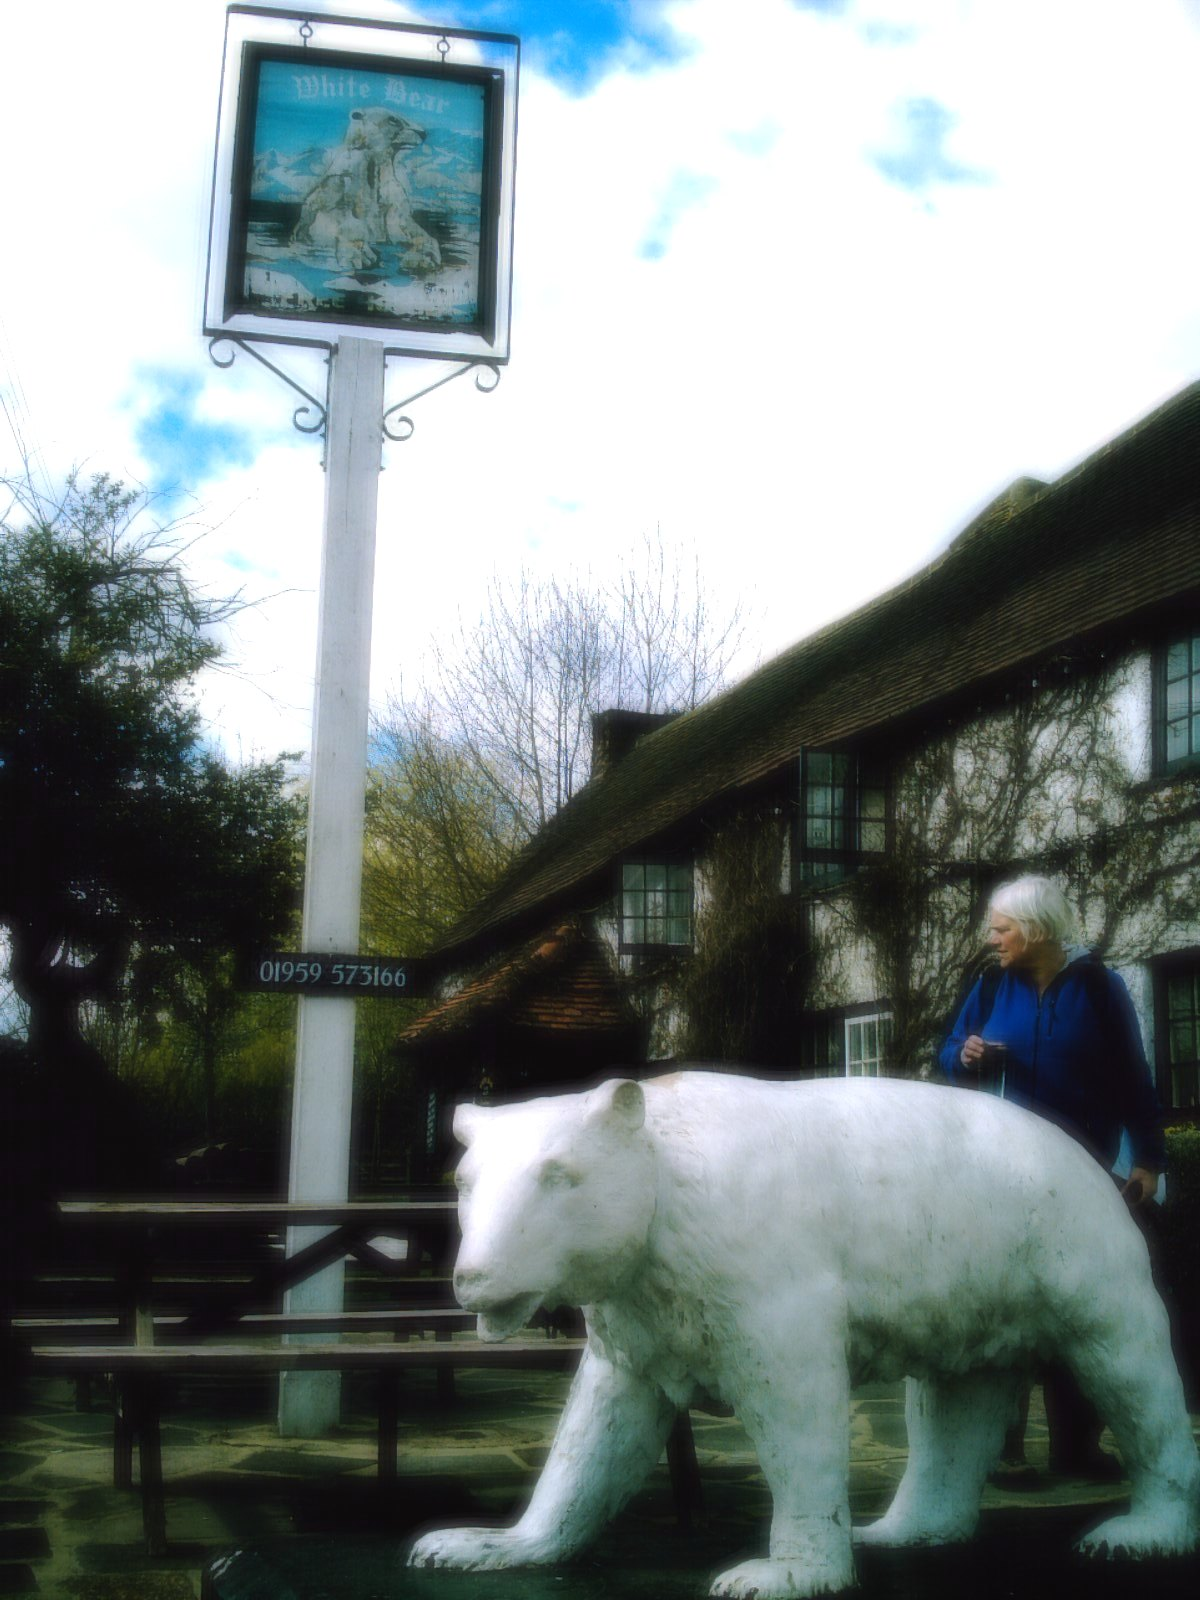 Upper Warlingham to Hayes. The White Bear, Fickleshole Where's my beer? Hofmeister if you don't mind! Camera: Vivitar 5199 5mp